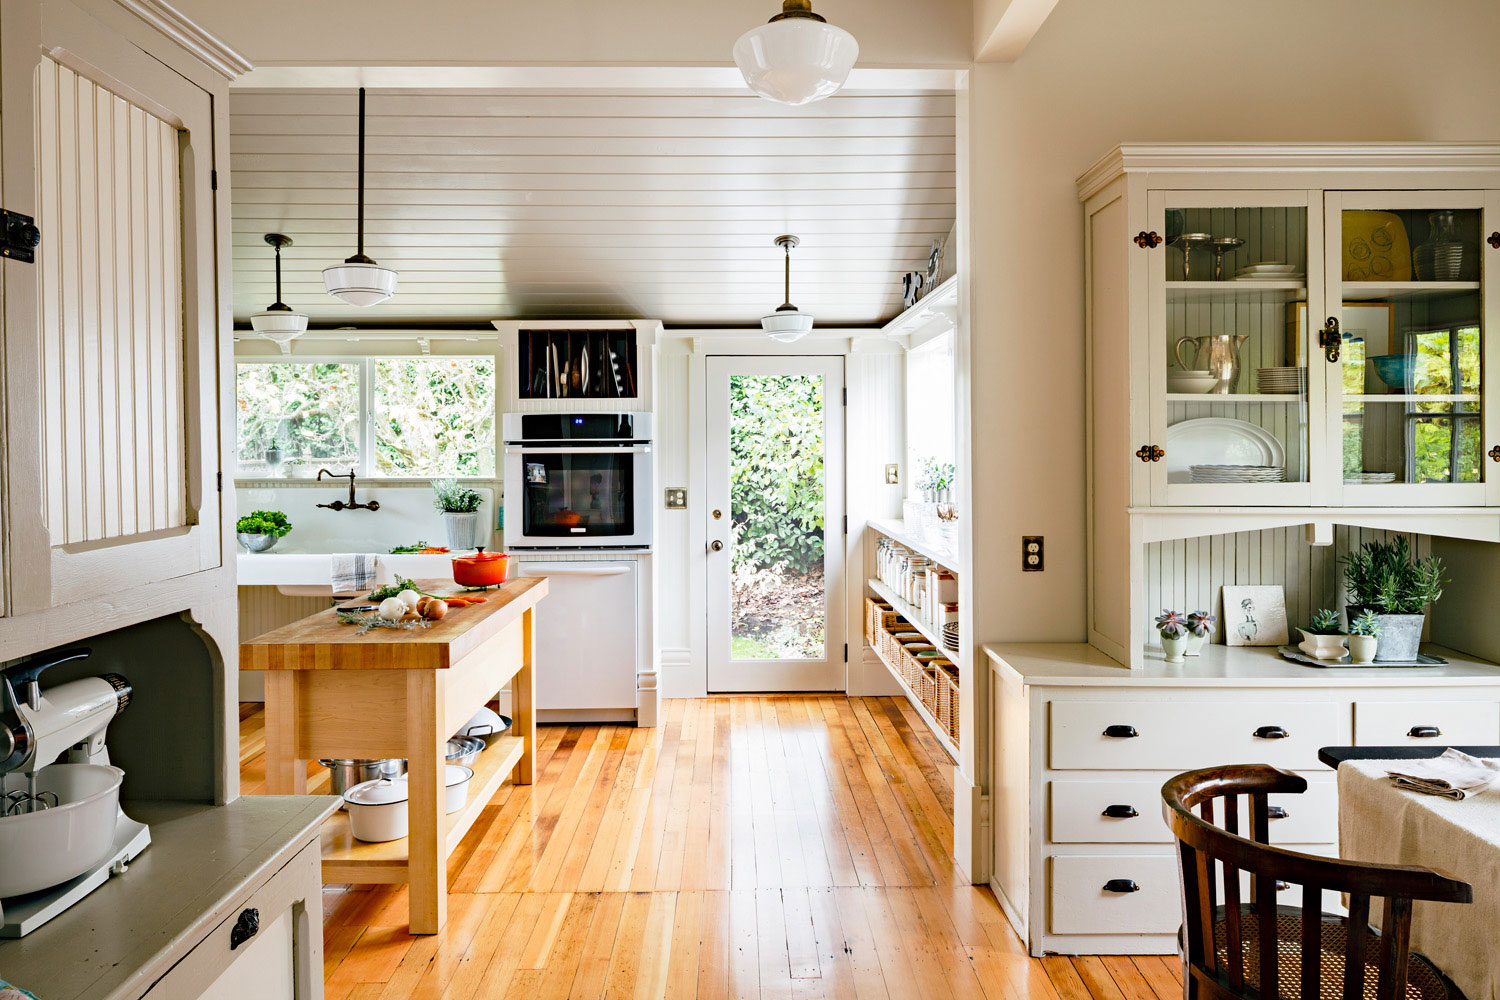 A resourceful Portland designer reawakened her Victorian kitchen by ...